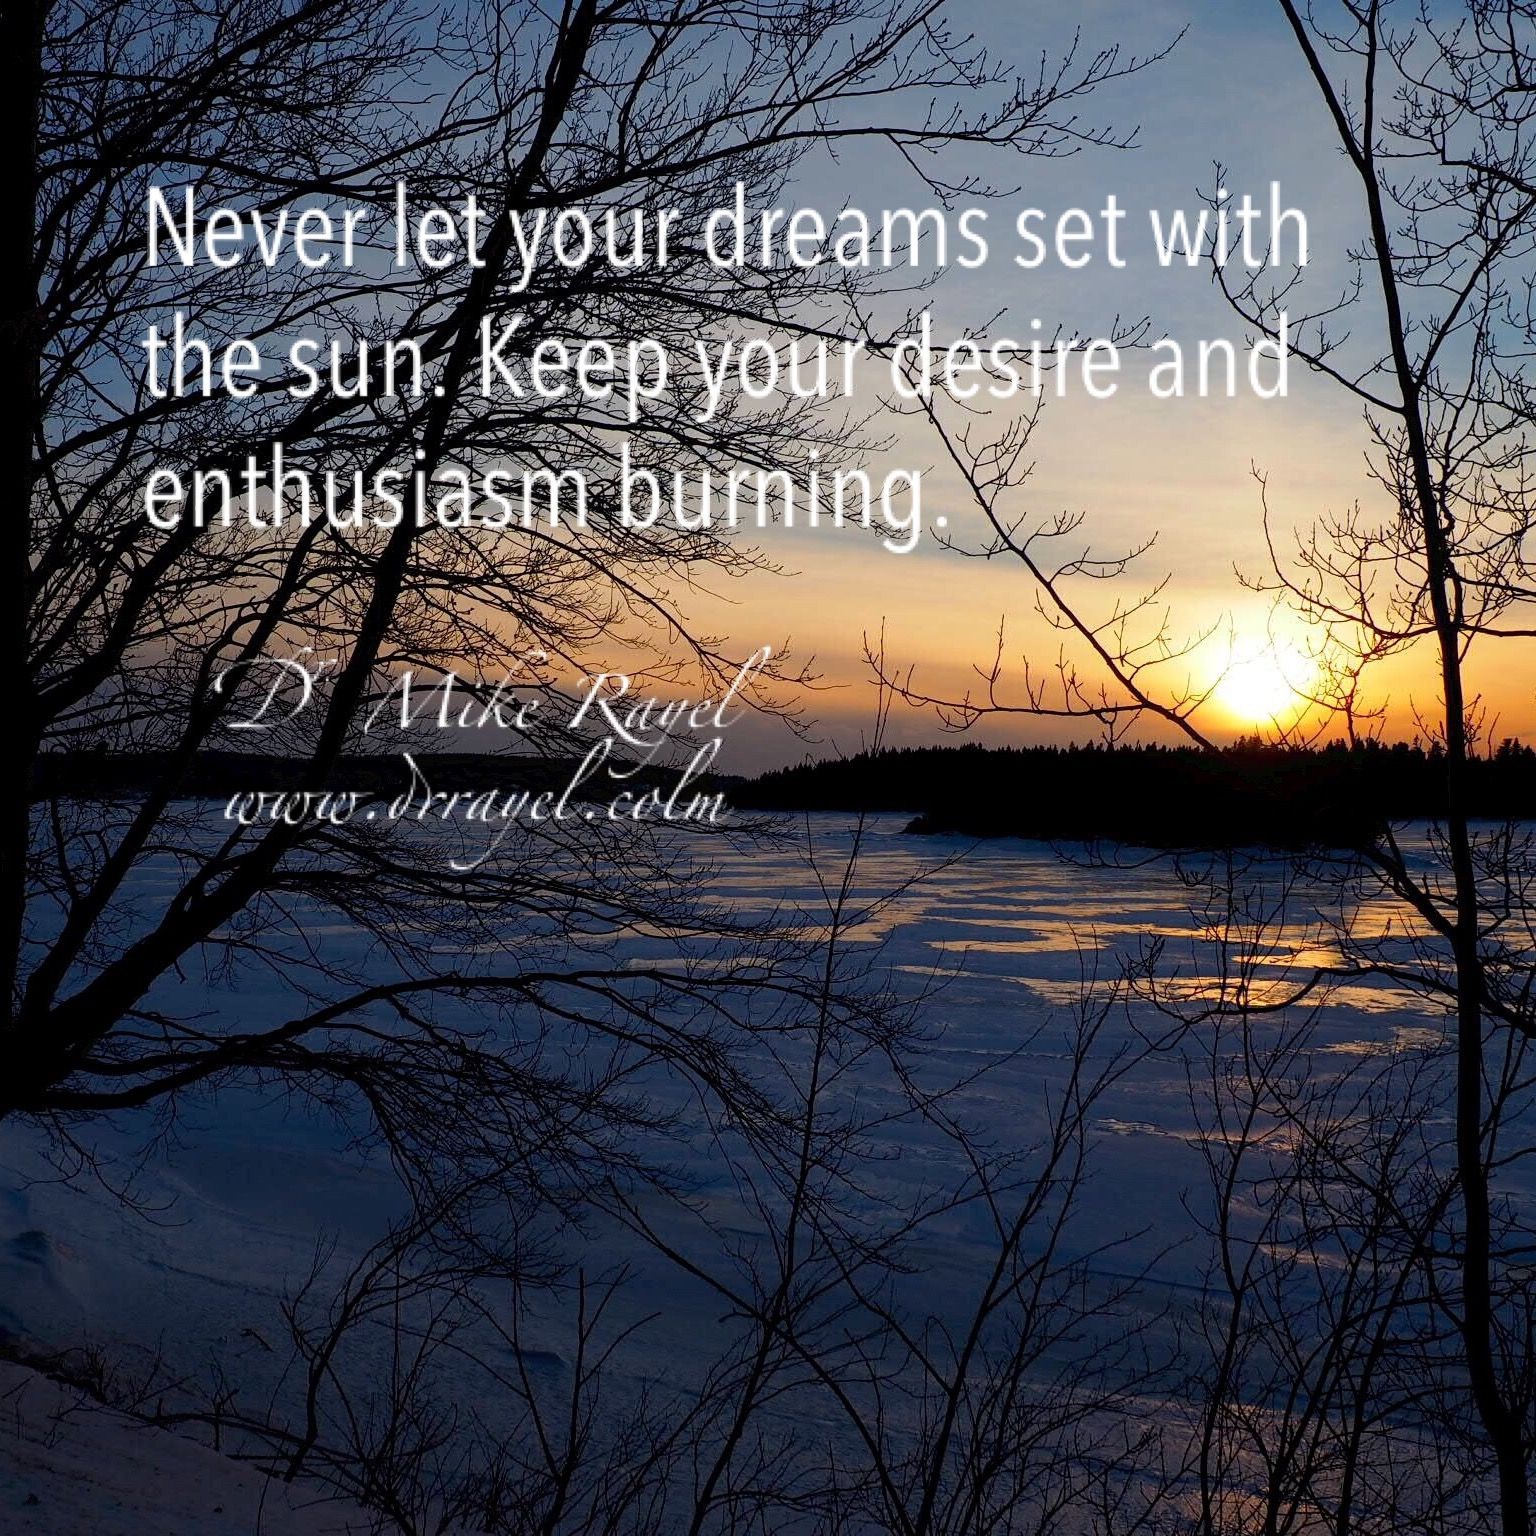 Never let your dreams set with the sun. Keep your desire and enthusiasm burning. #inspirational #motivational